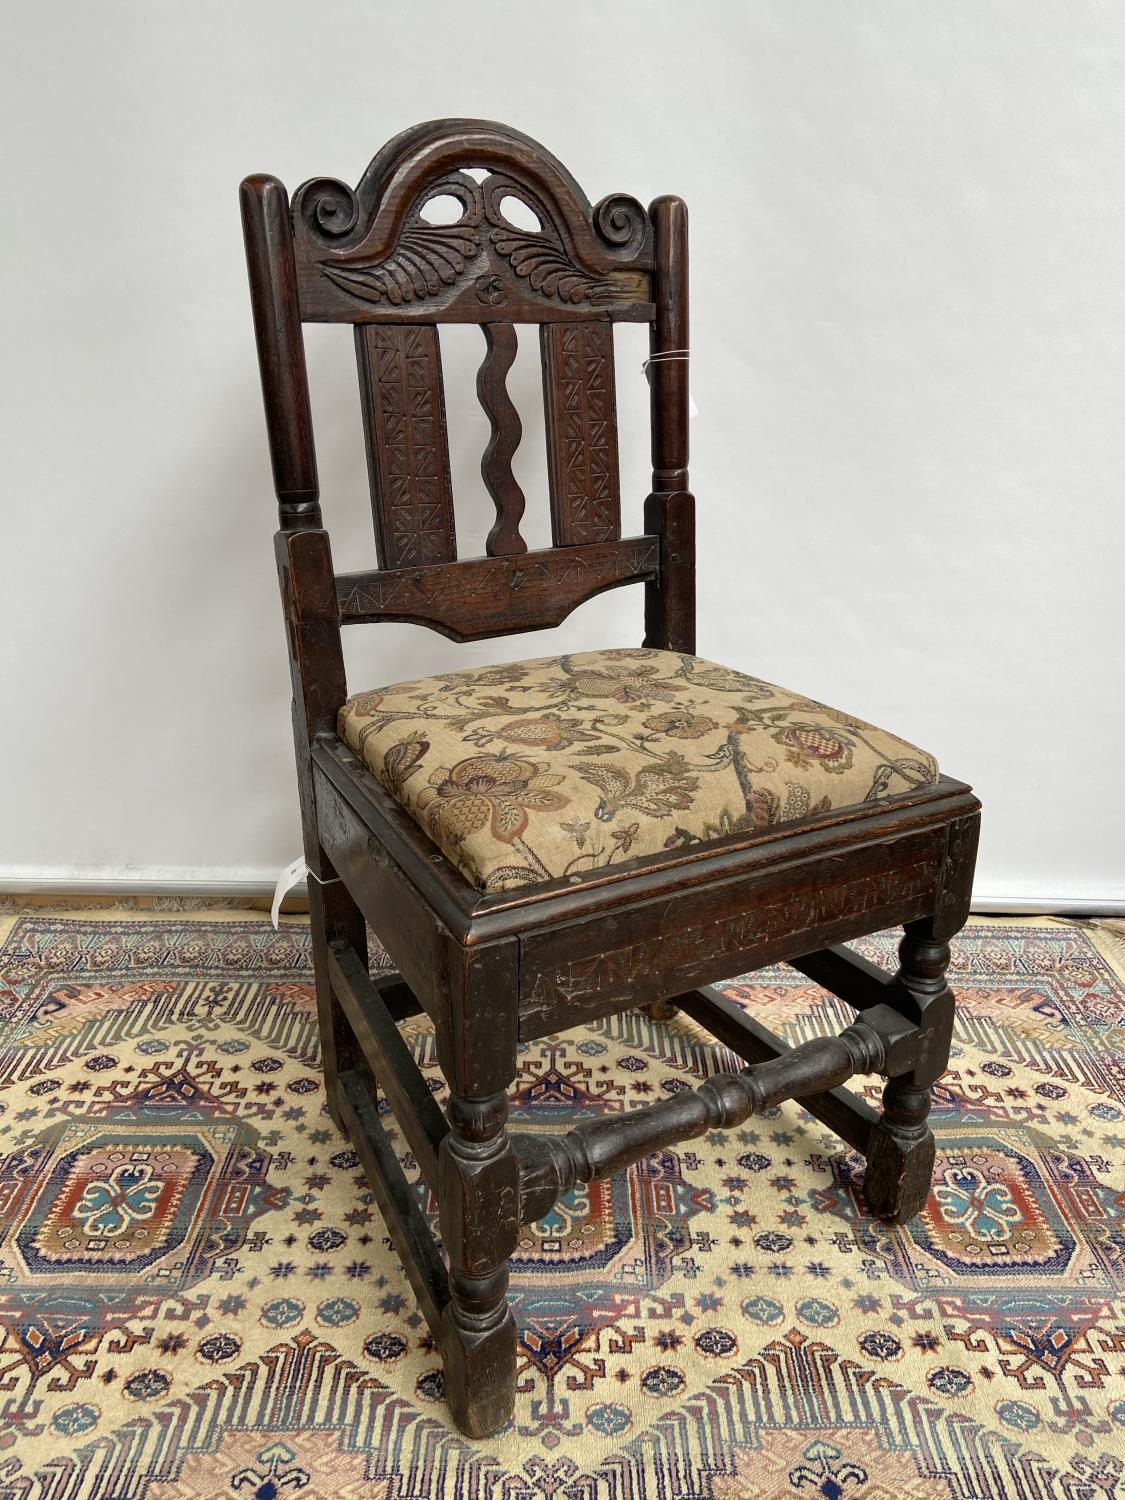 French carved walnut side chair [early 18th century] with a scroll-carved top rail above carved wavy